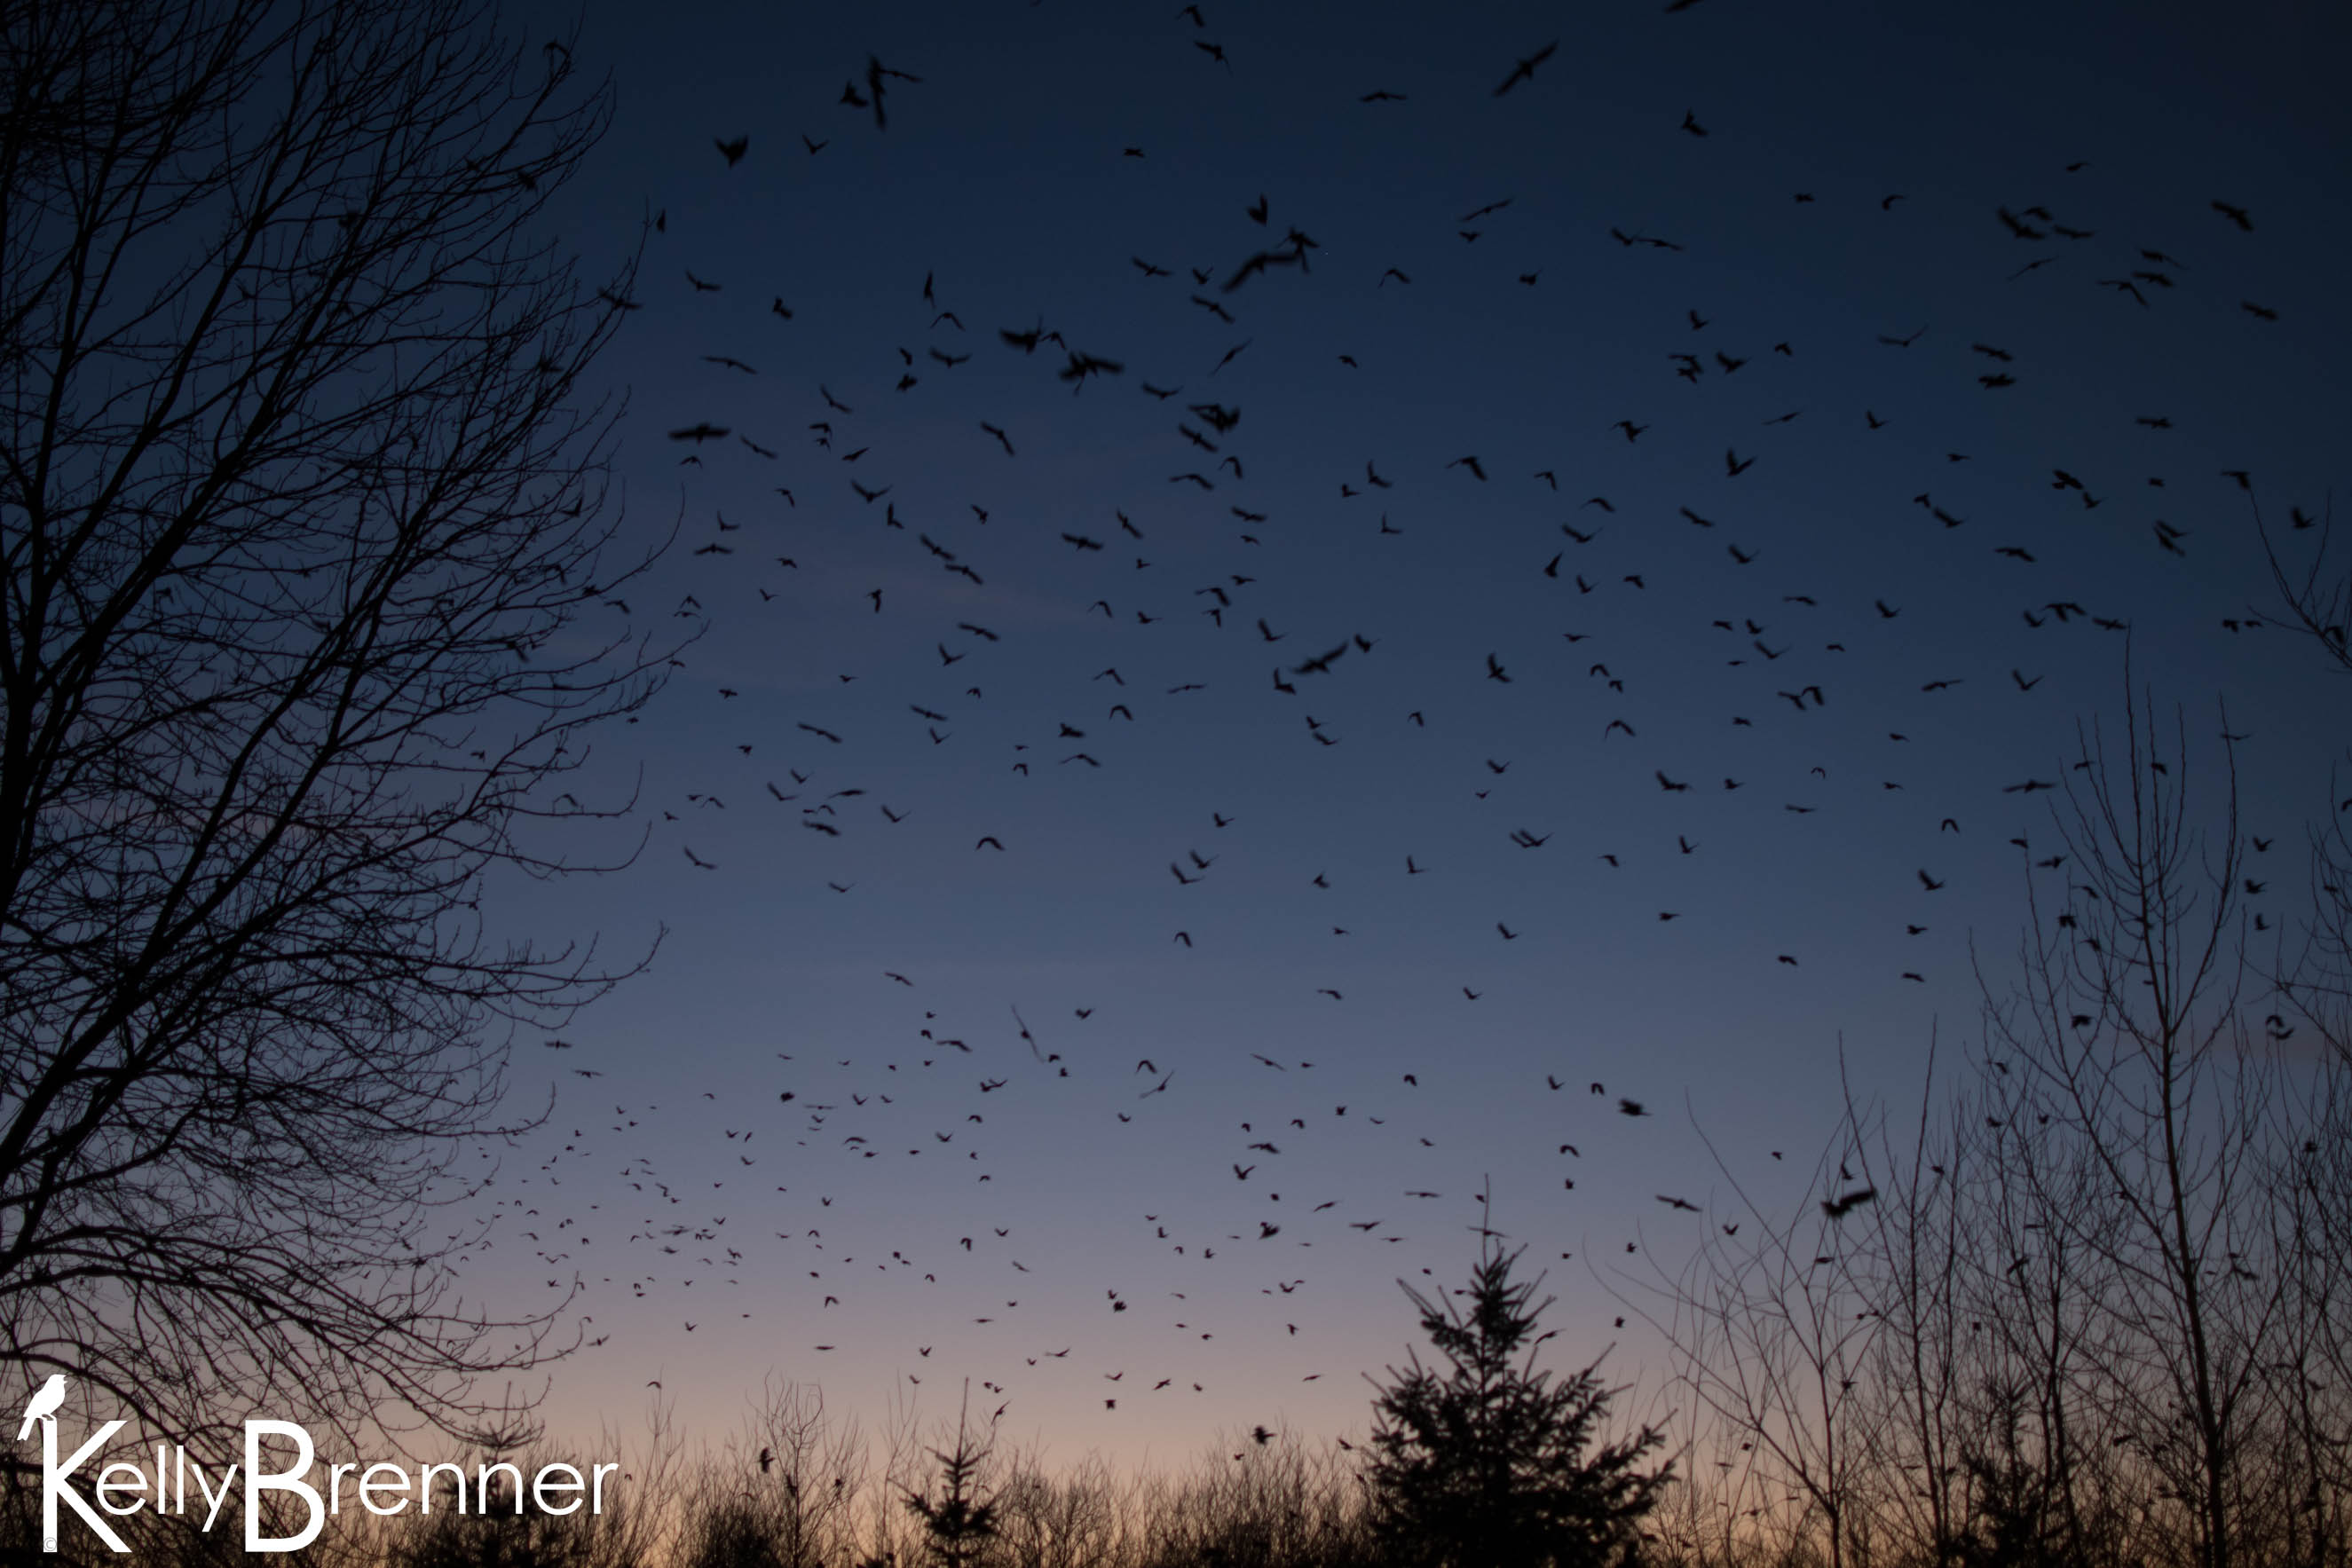 Field Journal – Renton Crow Roost